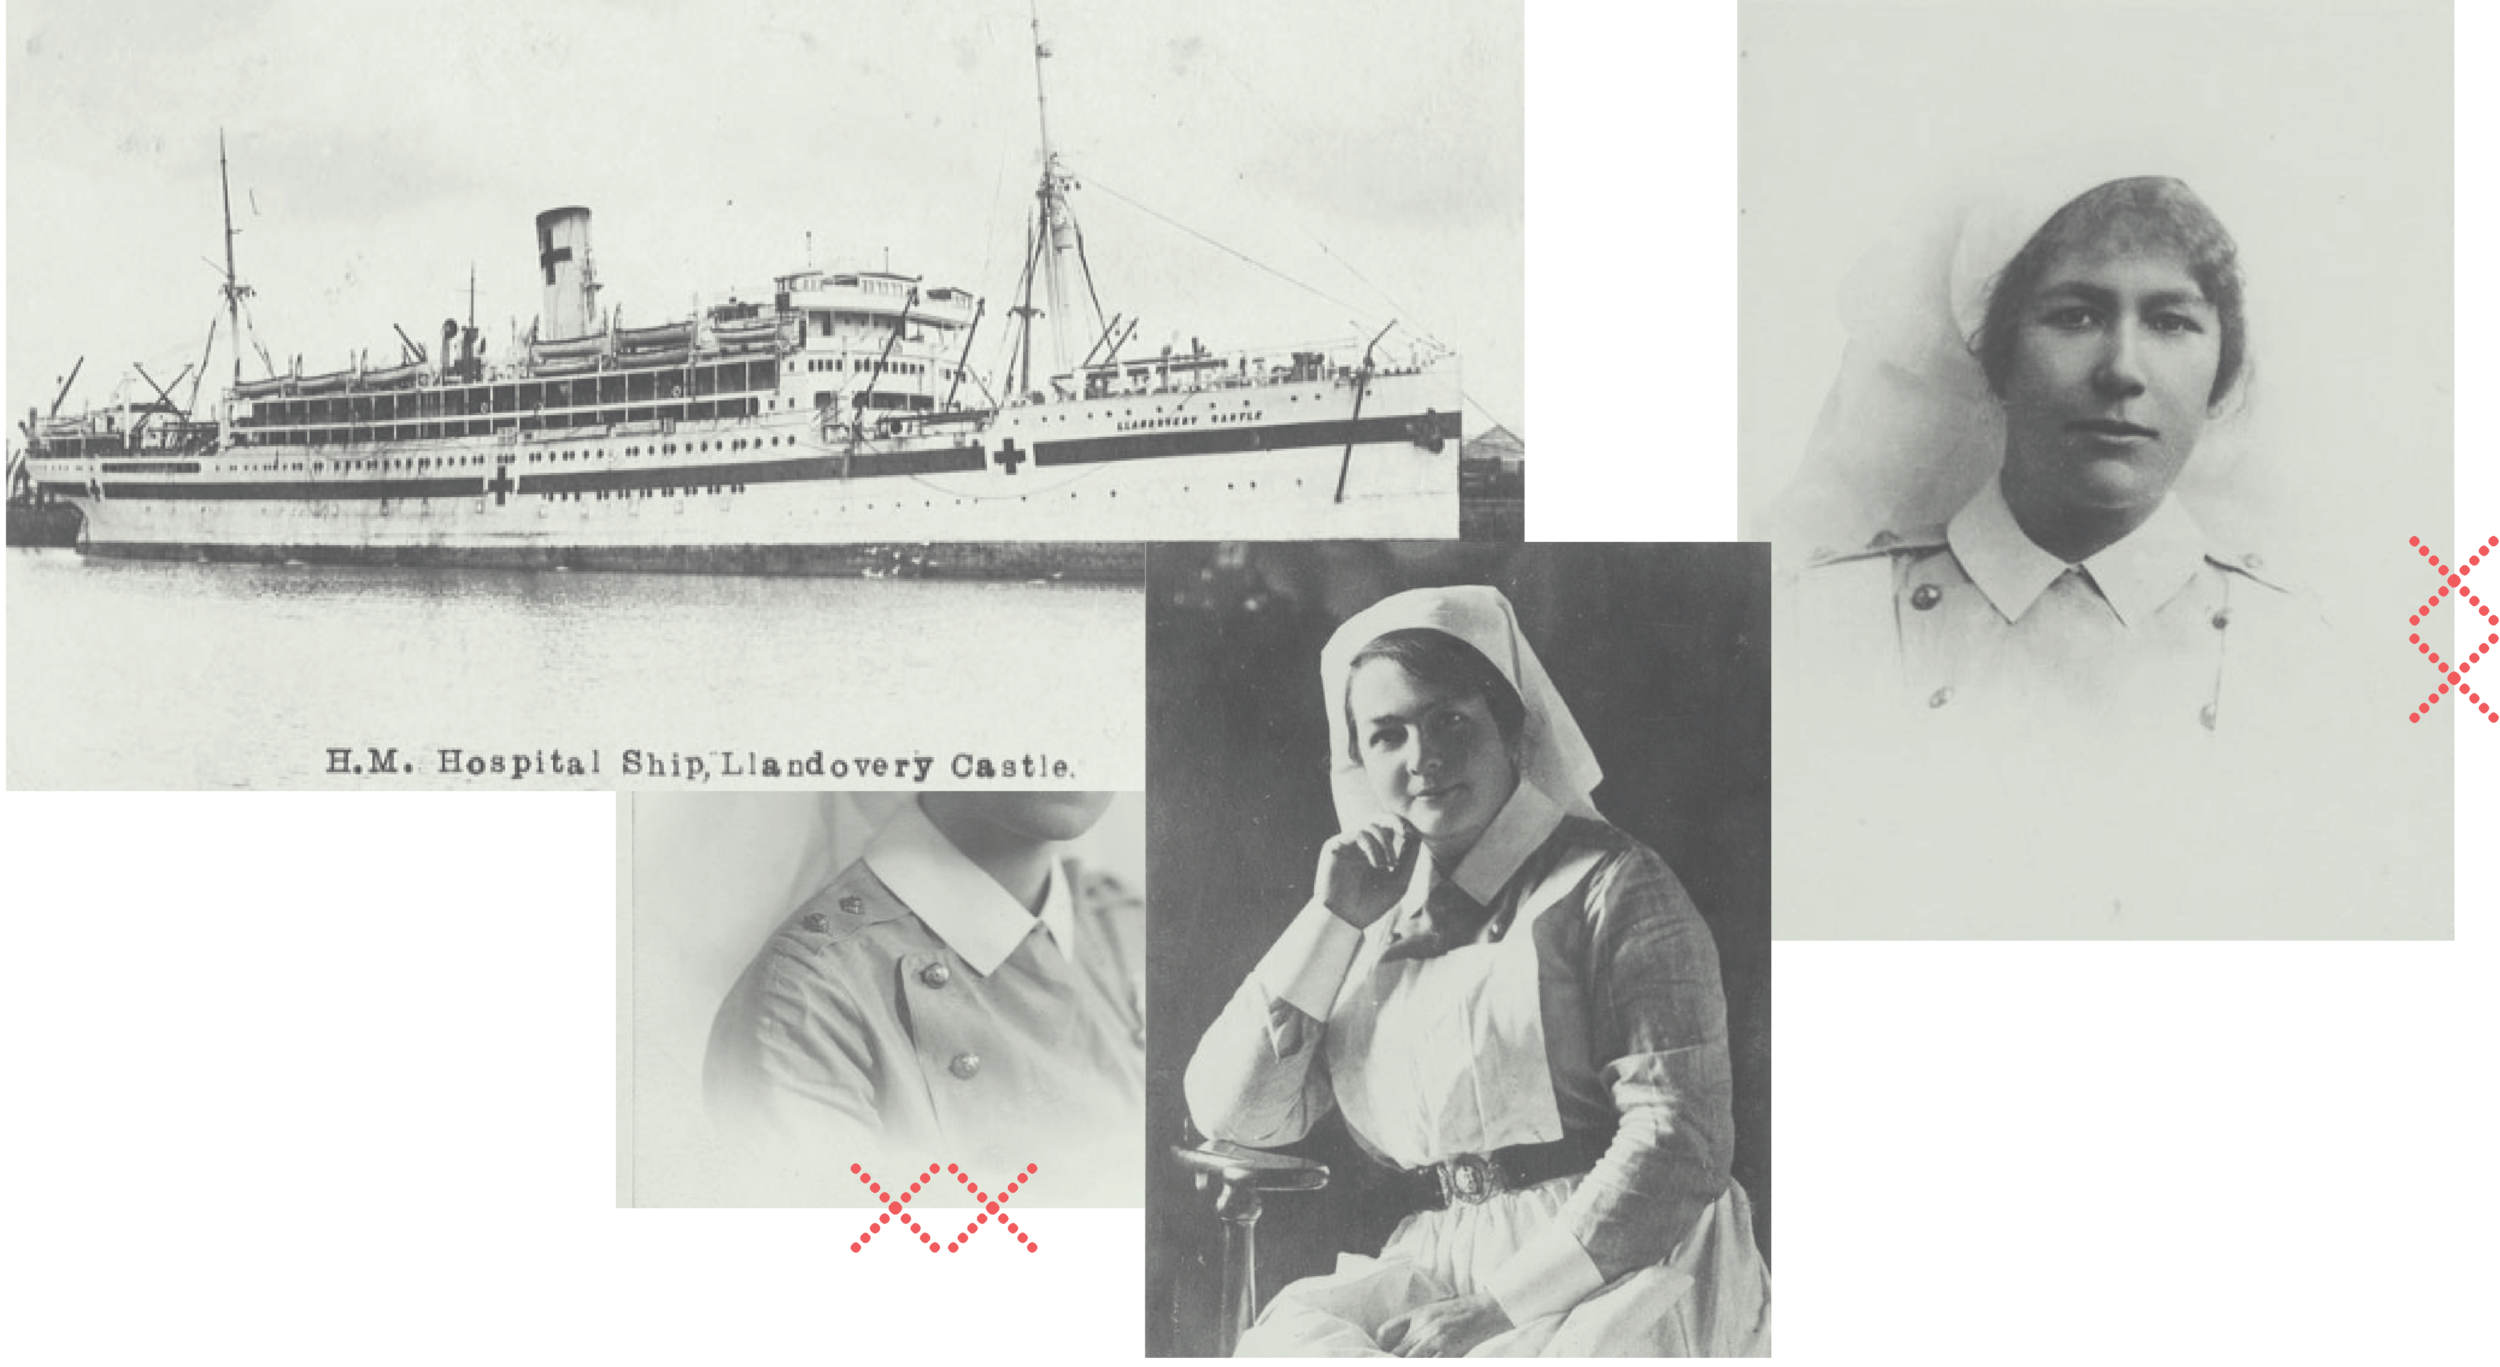 LlandoveryCastle_StephanieMartin_PaulCiufo_WorldWarI_Nurses_IMAGES-14-16.png